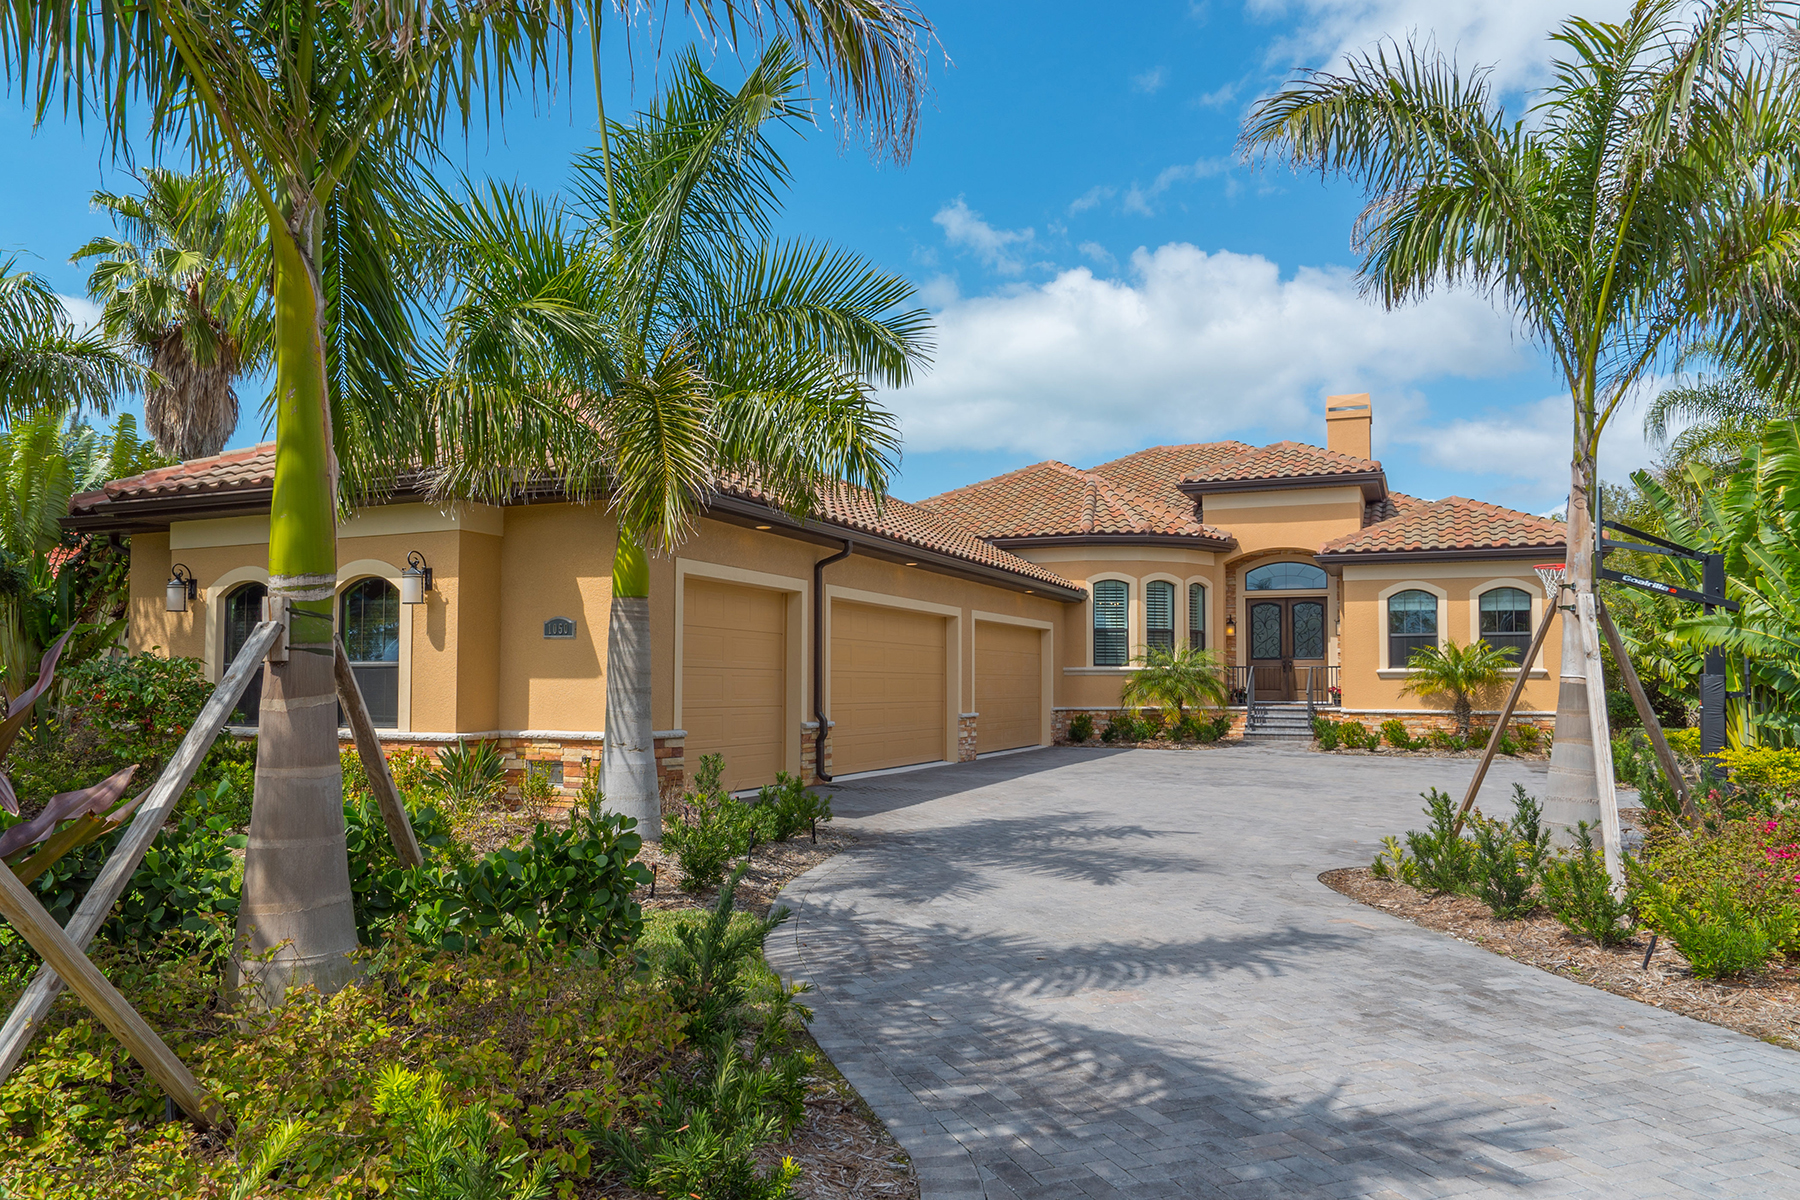 Villa per Vendita alle ore CASEY KEY ESTATES 1050 Gulf Winds Way Nokomis, Florida, 34275 Stati Uniti